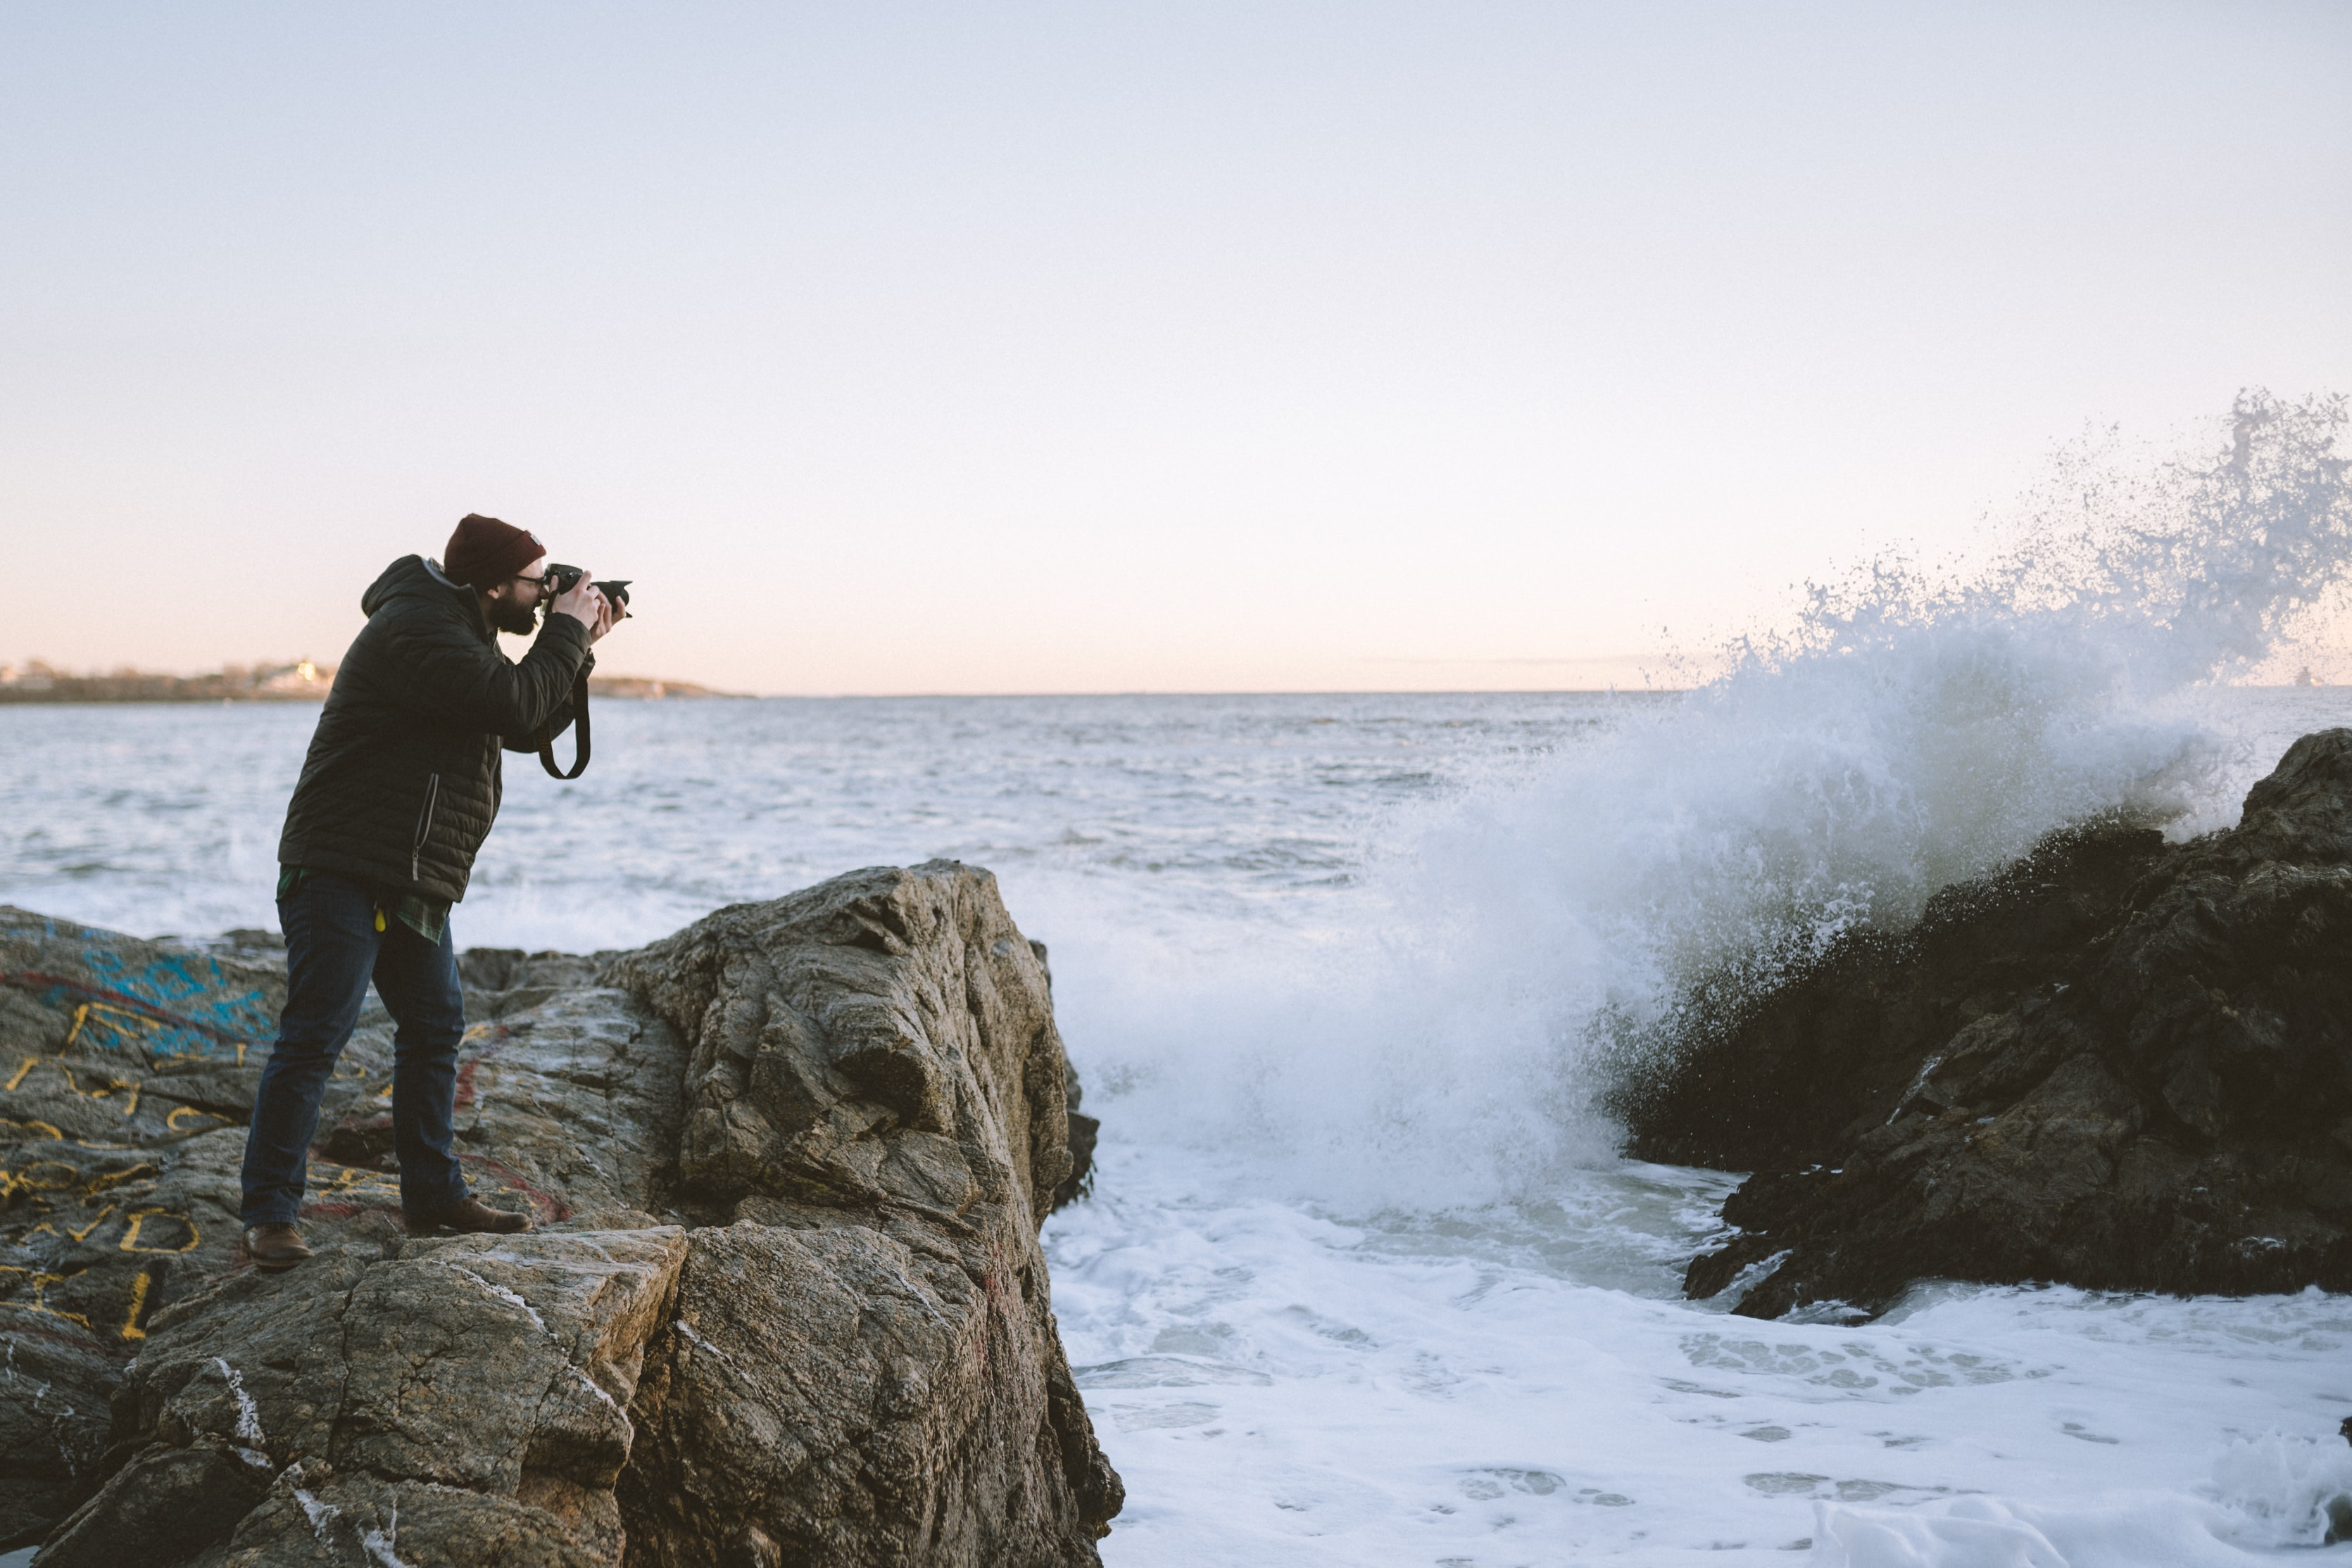 man taking photo of rock formation with sea waves at daytime